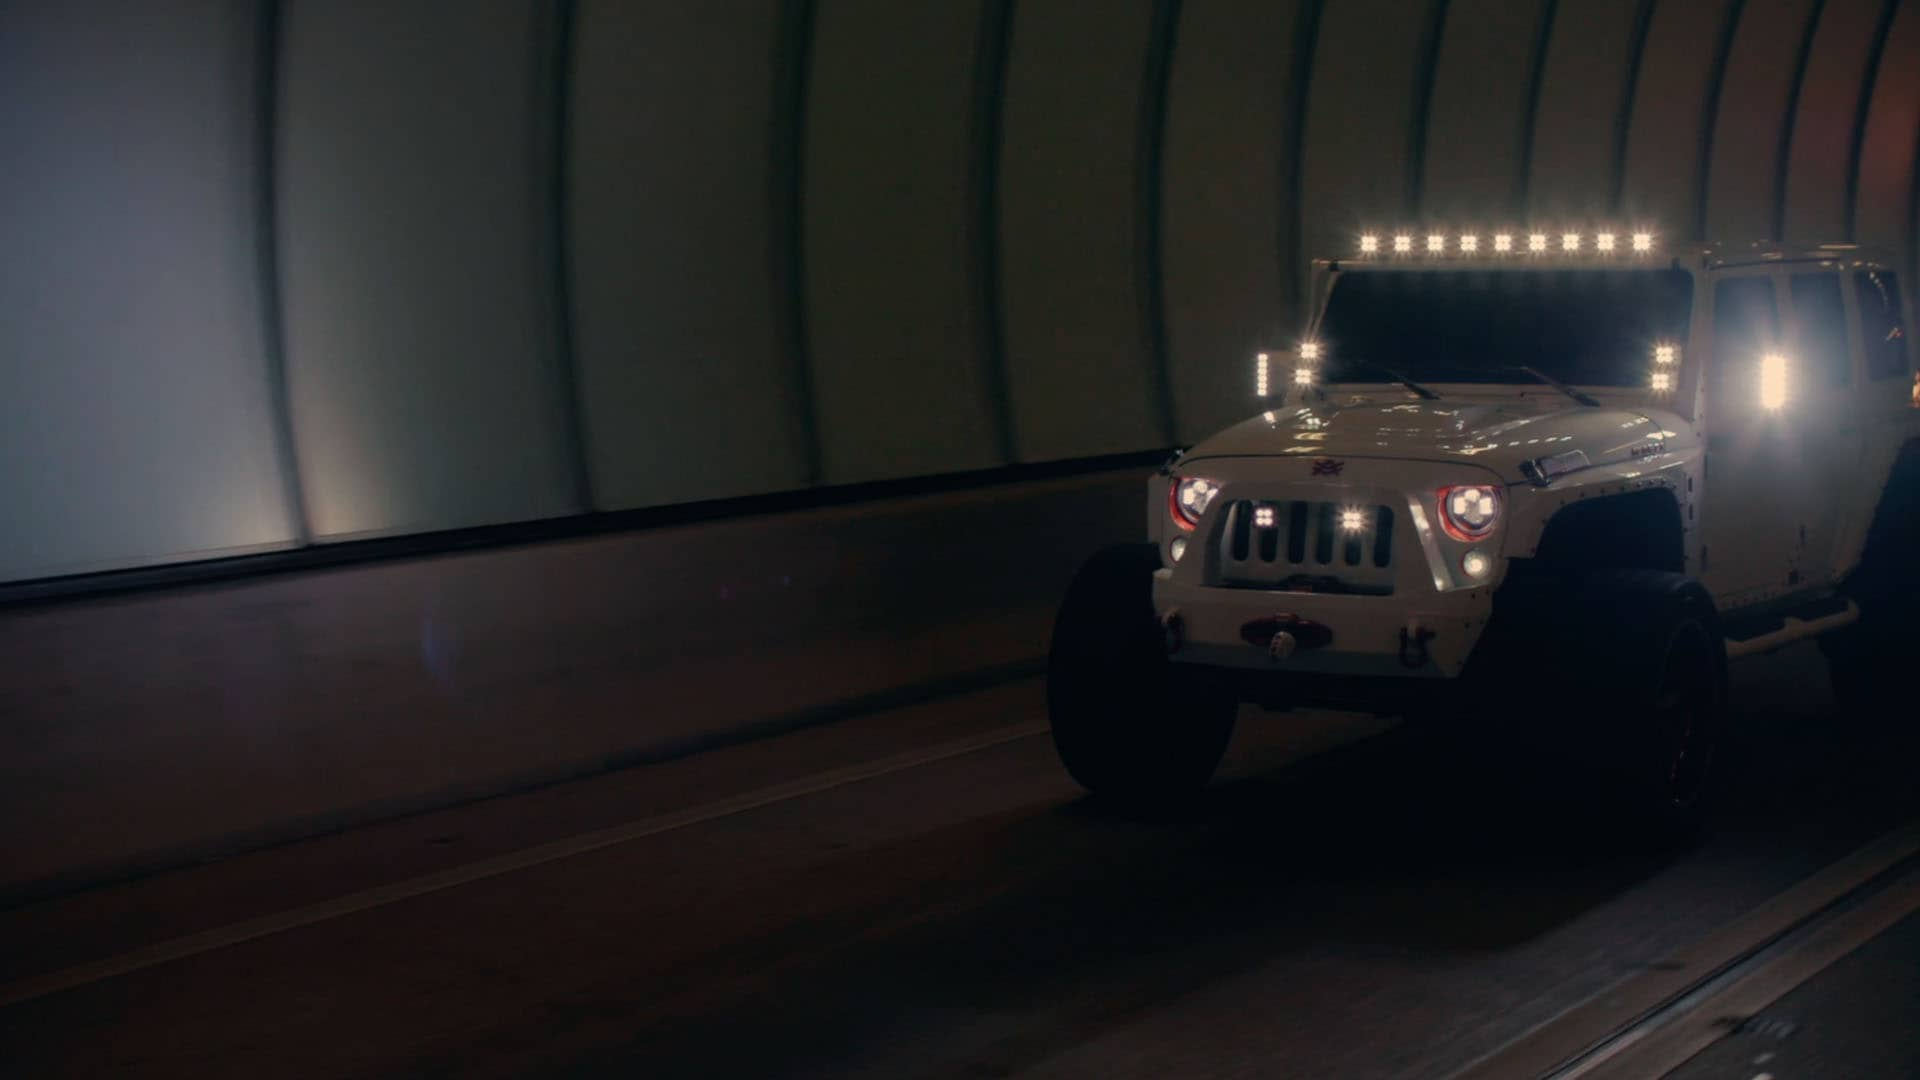 A white, tuned-up Jeep with lights on crosses a dark tunnel